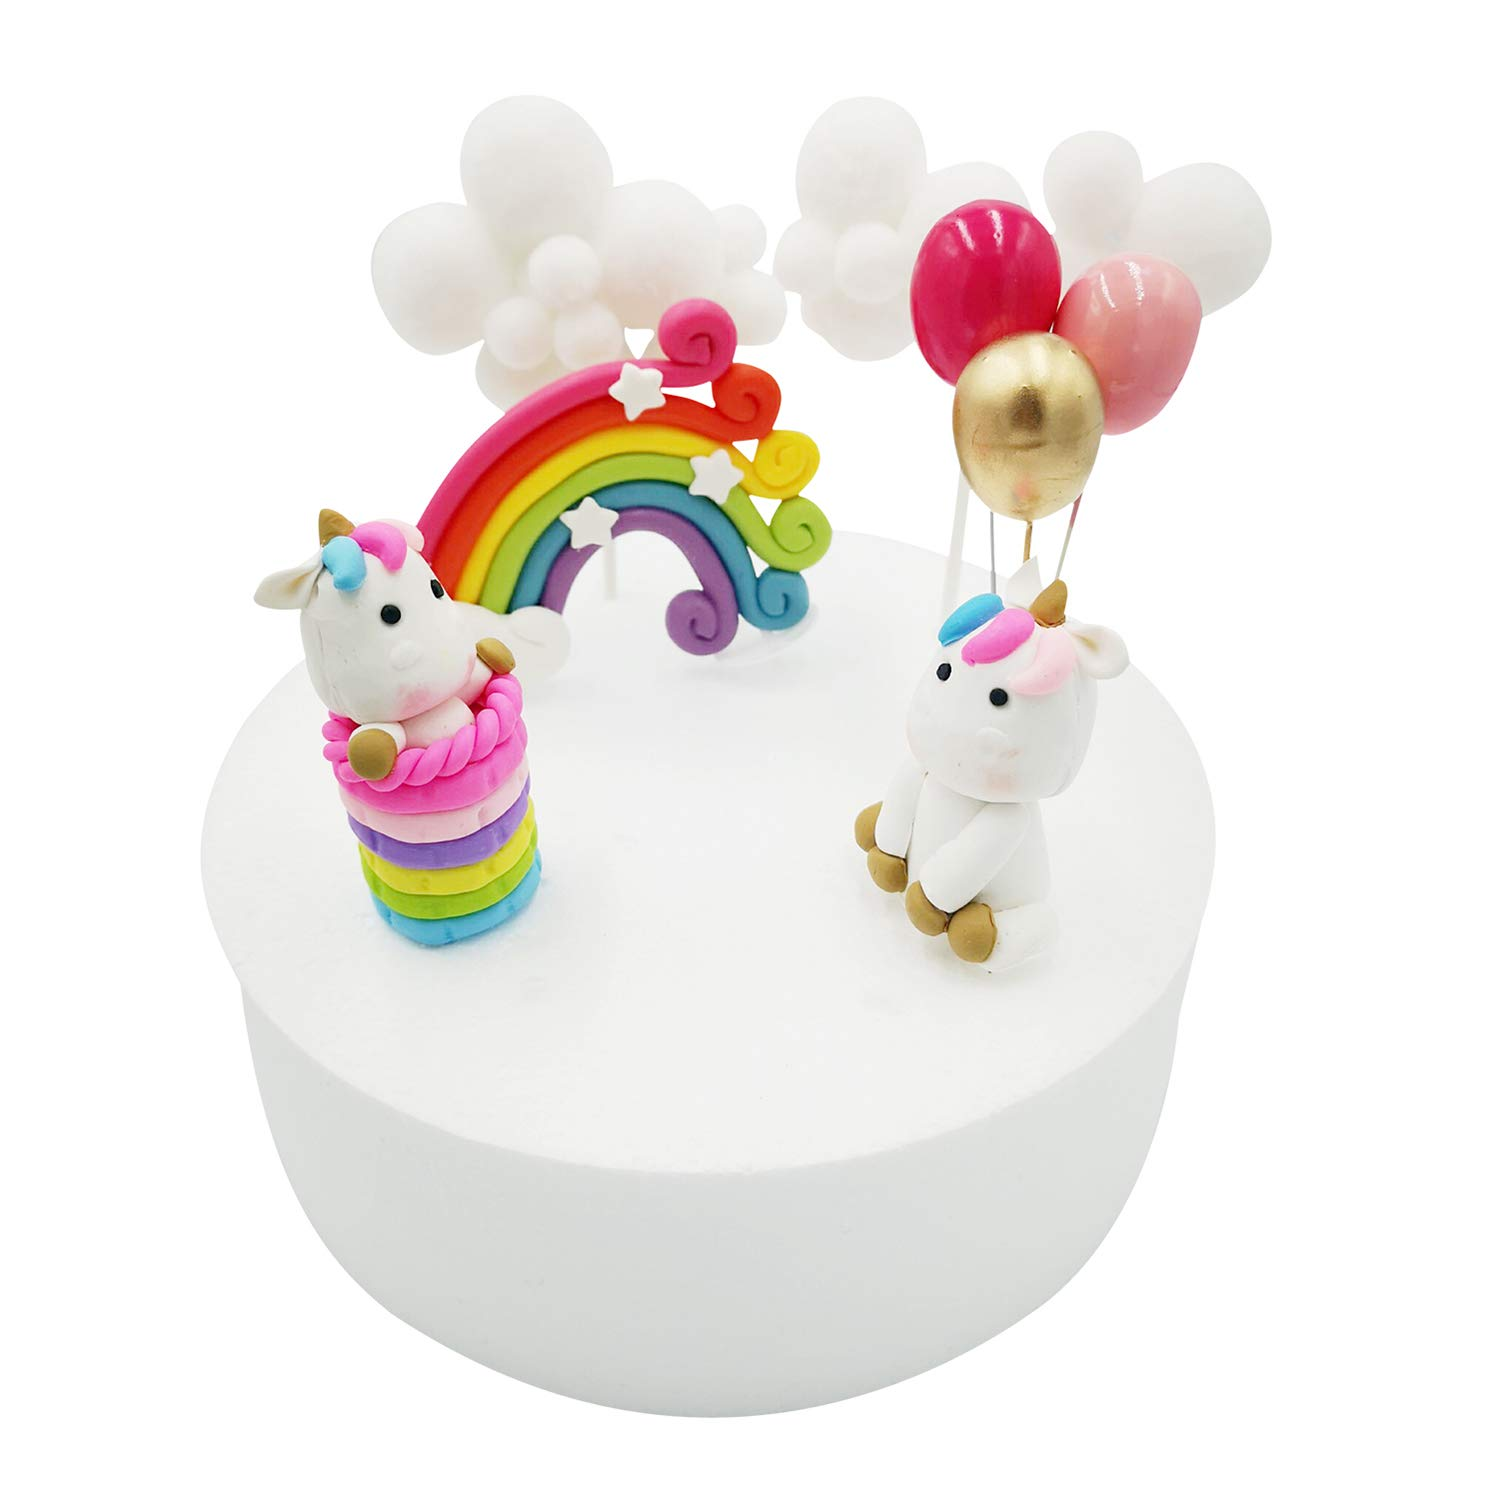 Callaia Balloon Rainbow Cloud Unicorn Cake Topper for Boys and Girls Unicorn Birthday Party Cake Decorations Set of 8